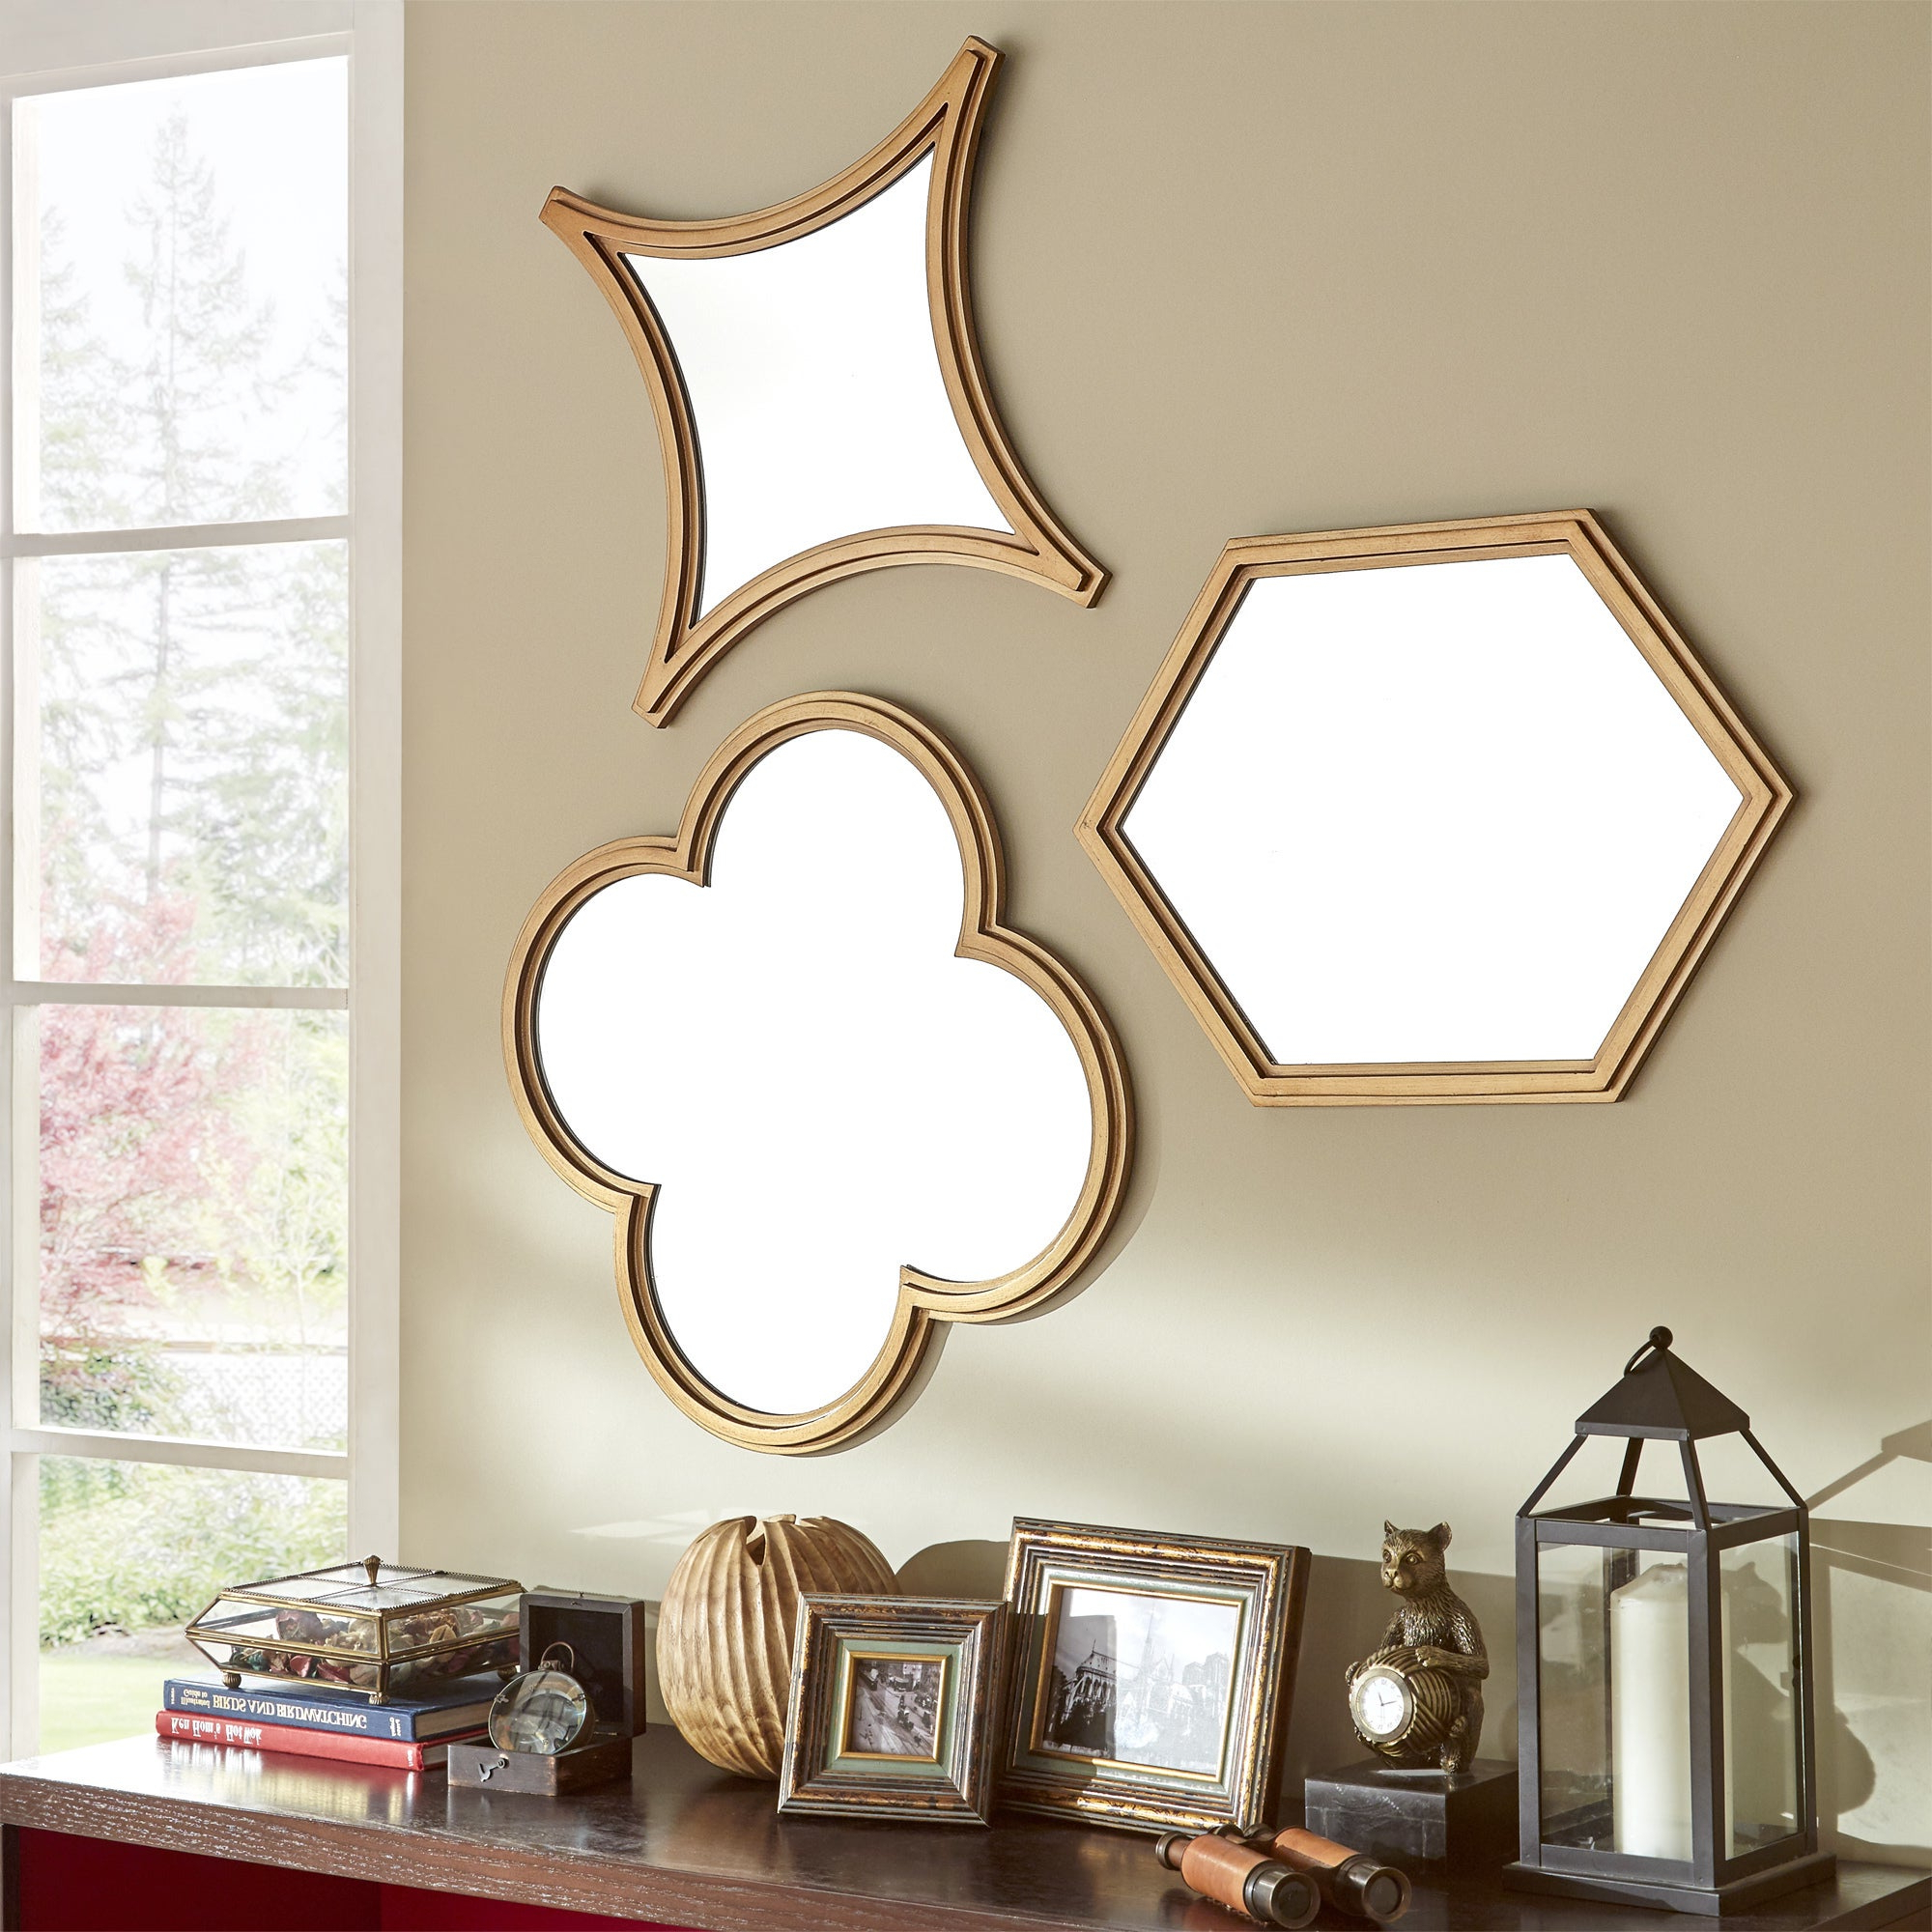 Vega Hexagon Flower Diamond Shape Wall Mirrors (set Of 3)inspire Q Bold – Gold For Most Up To Date Hexagon Wall Mirrors (View 14 of 20)